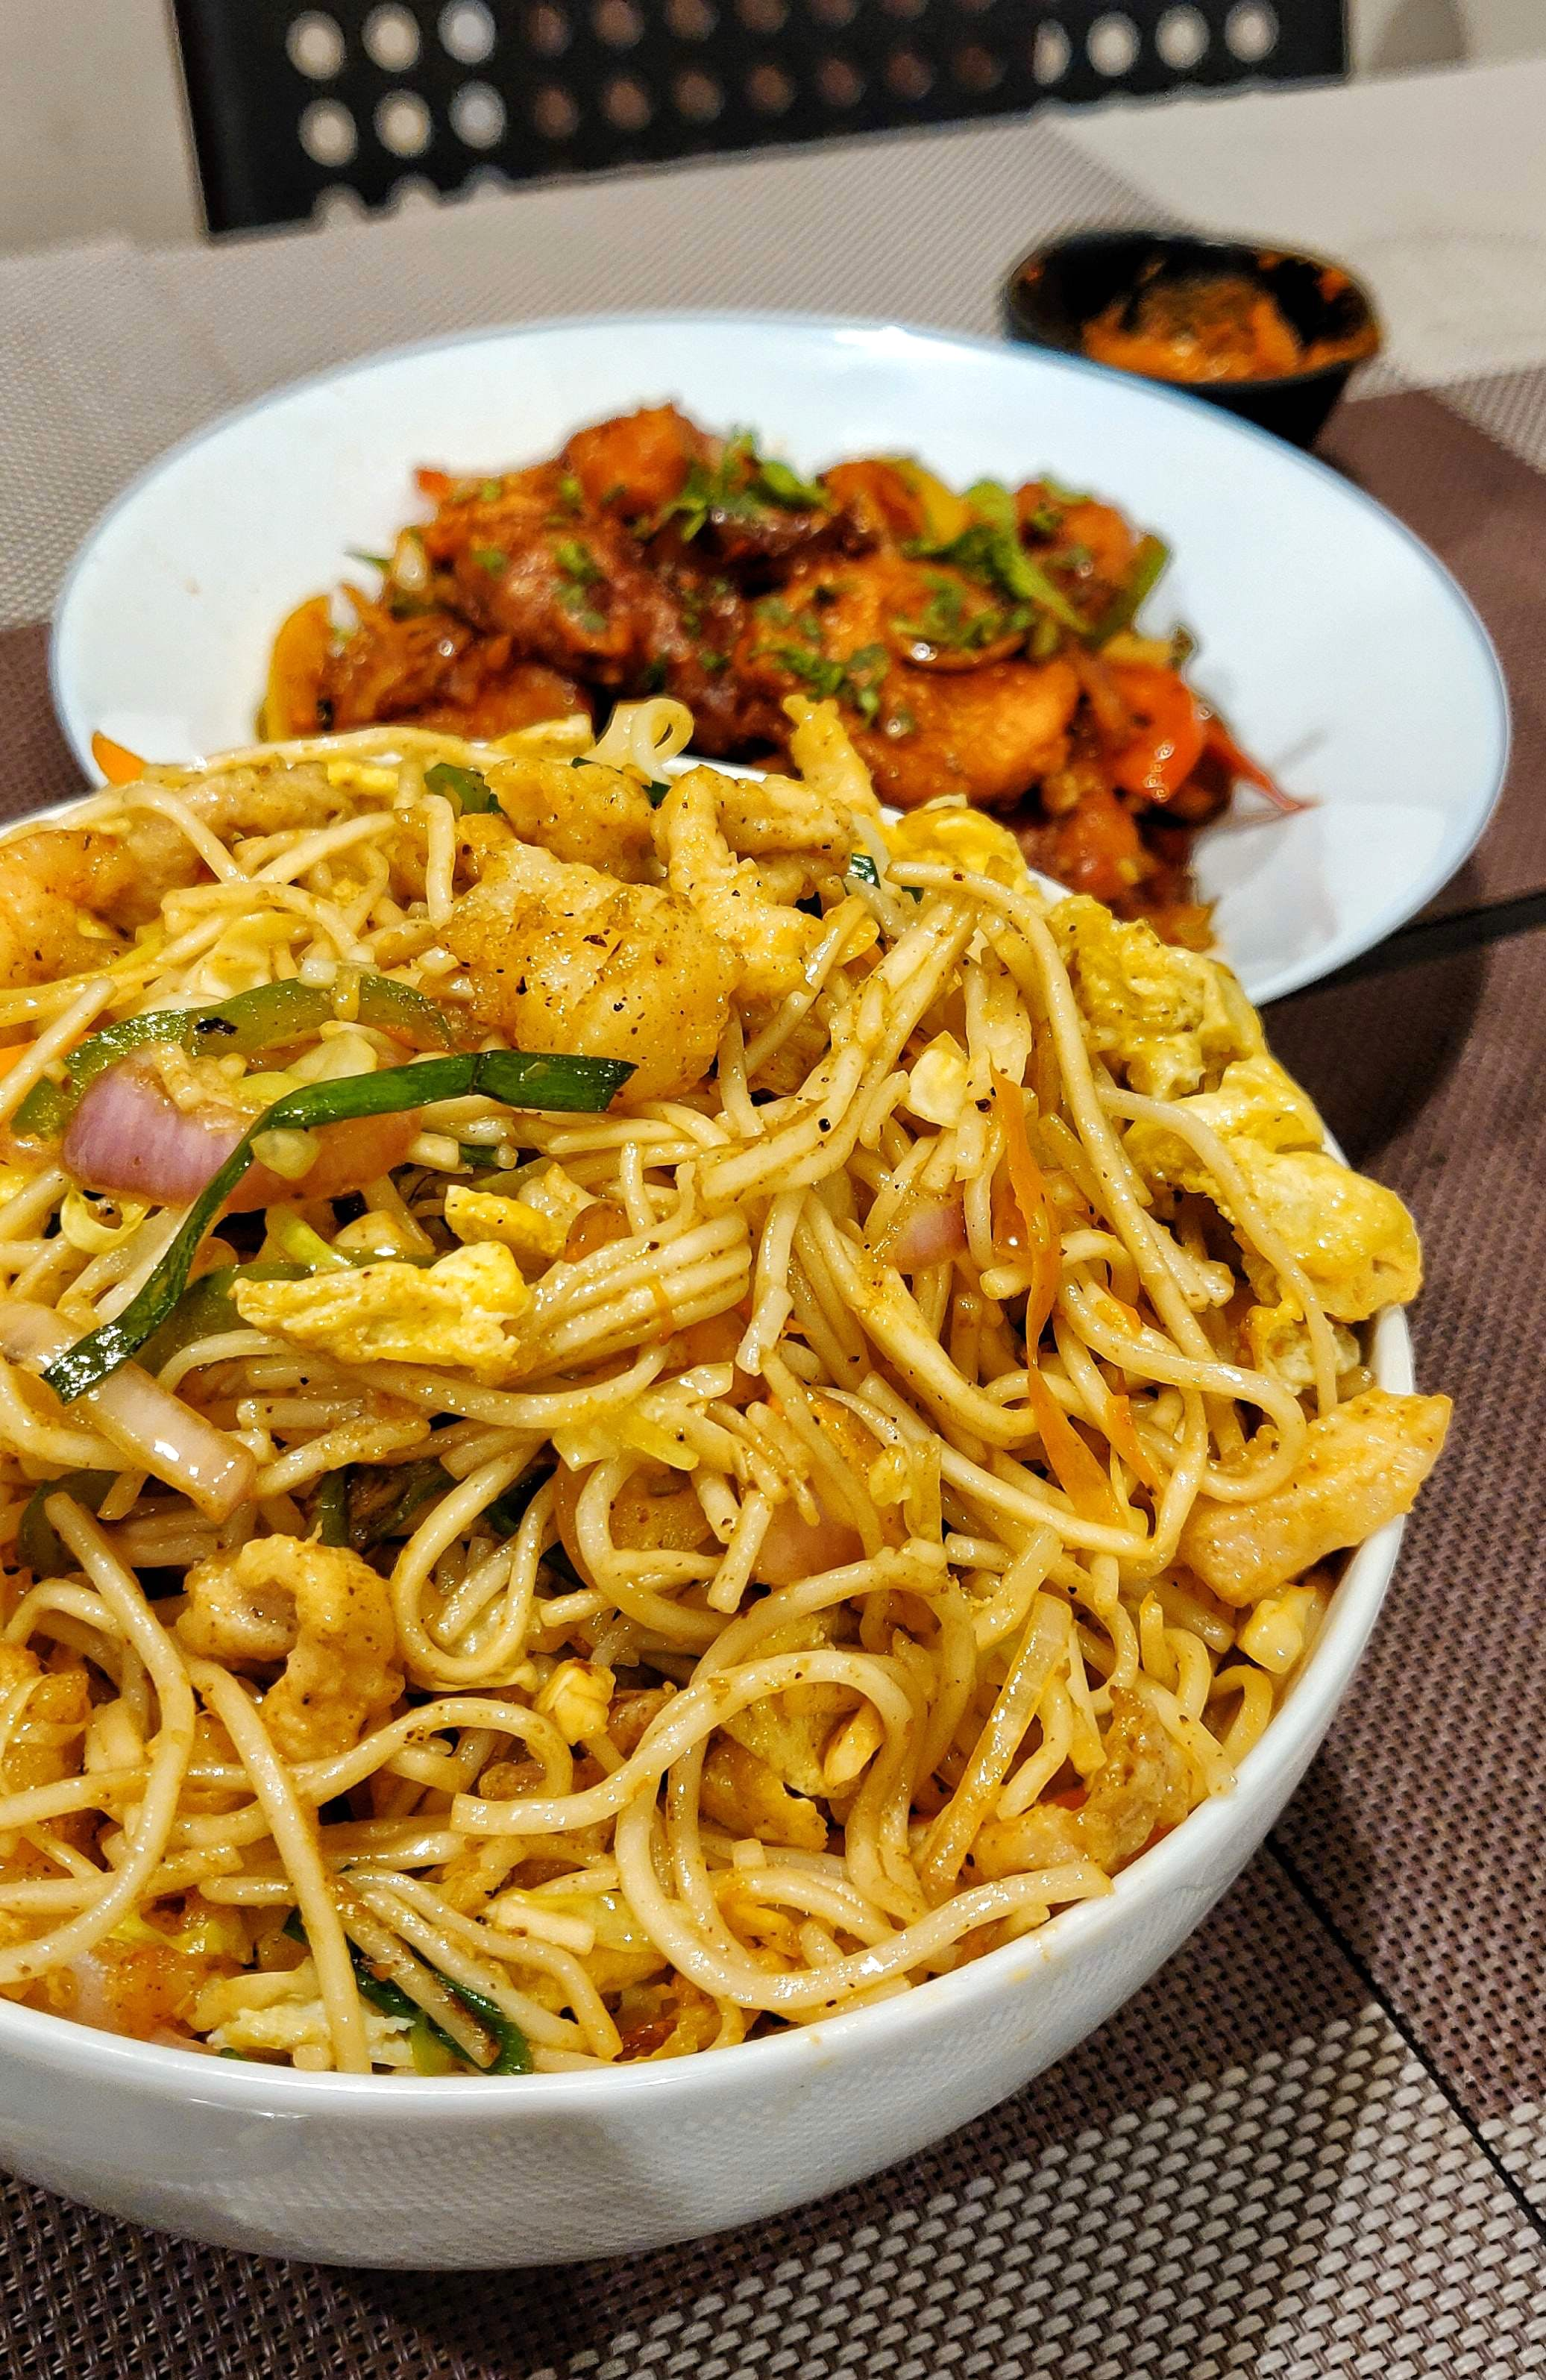 This Restaurant In Sainikpuri Serves Killer Comfort Food!